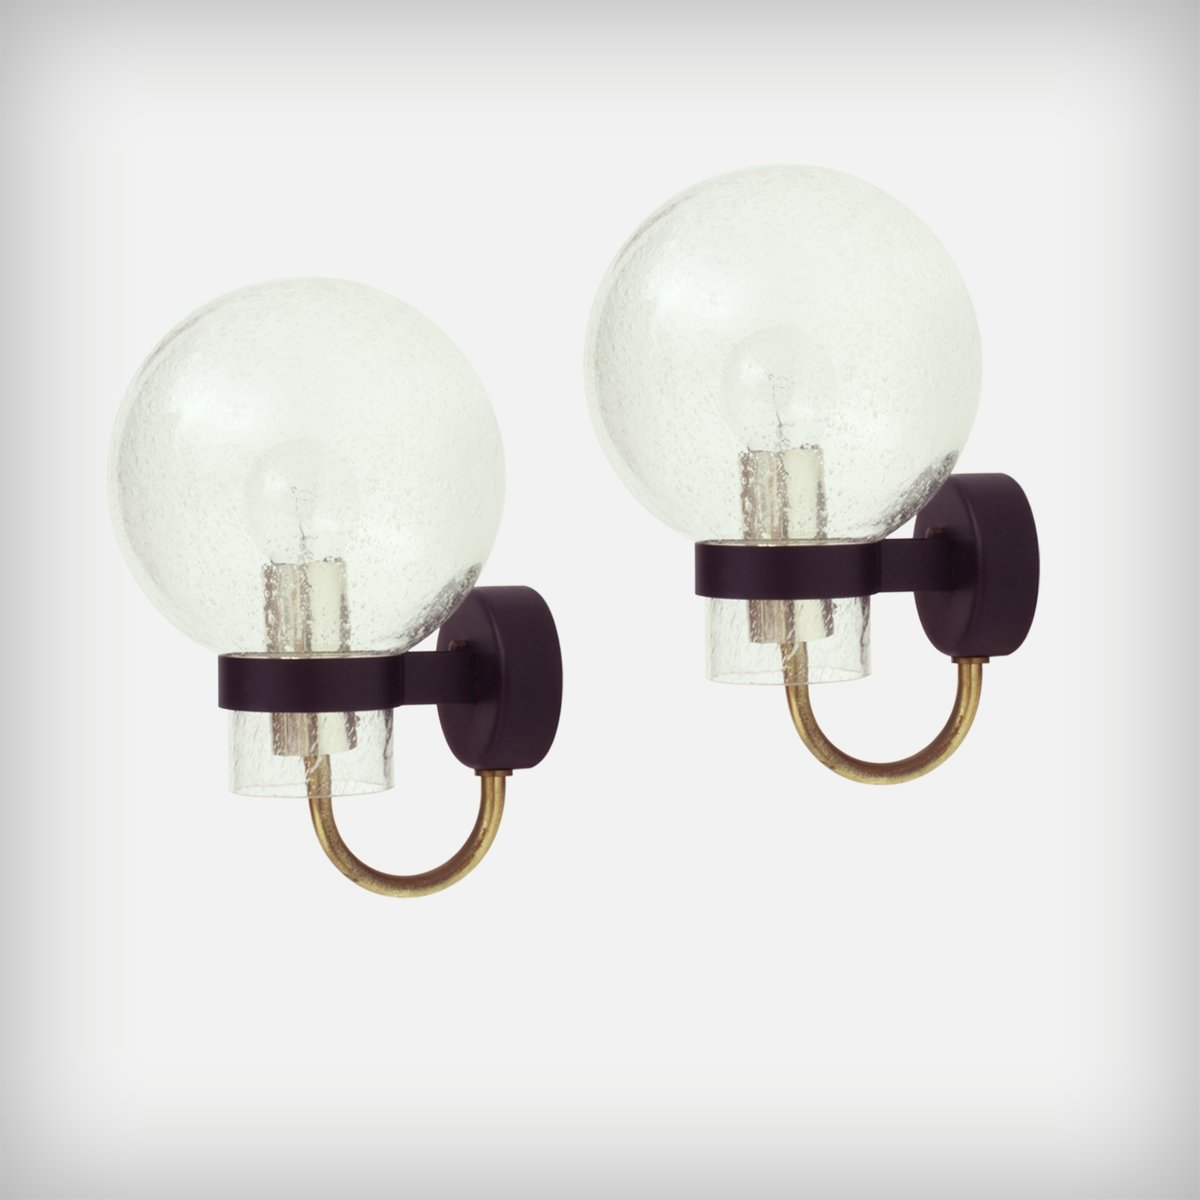 German glass brass wall lights from glashtte limburg 1960s set german glass brass wall lights from glashtte limburg 1960s set of 2 aloadofball Choice Image